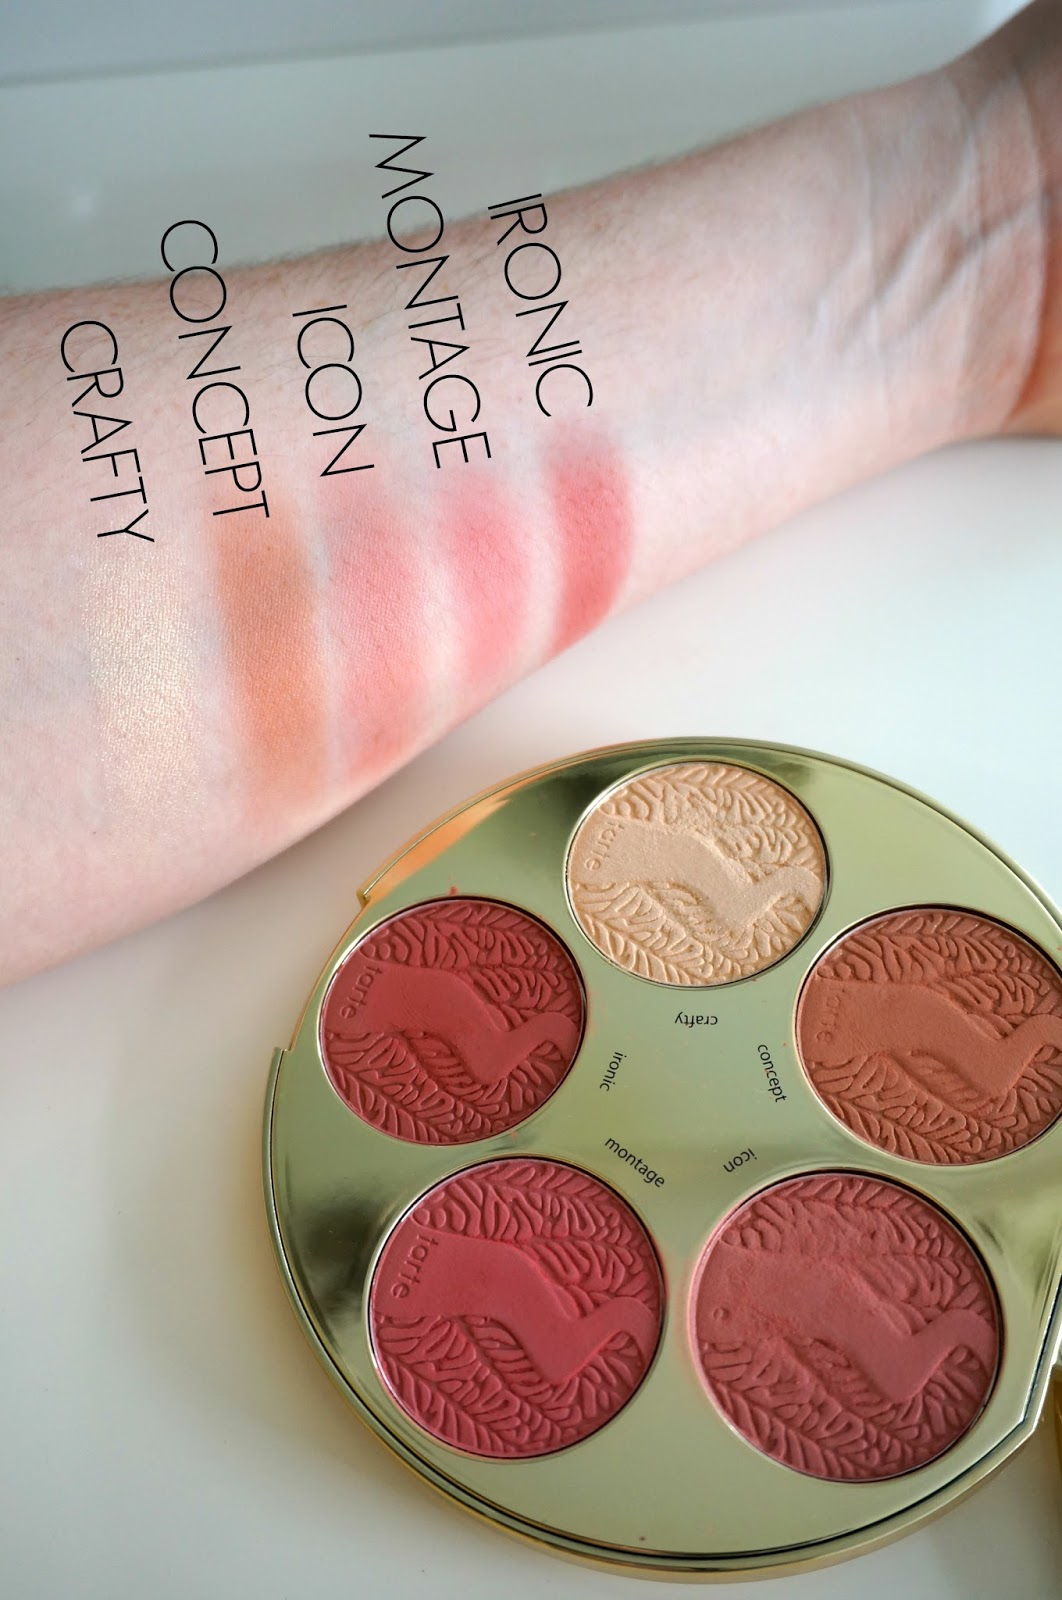 Rebecca Lately Tarte Color Wheel Blush Palette Review